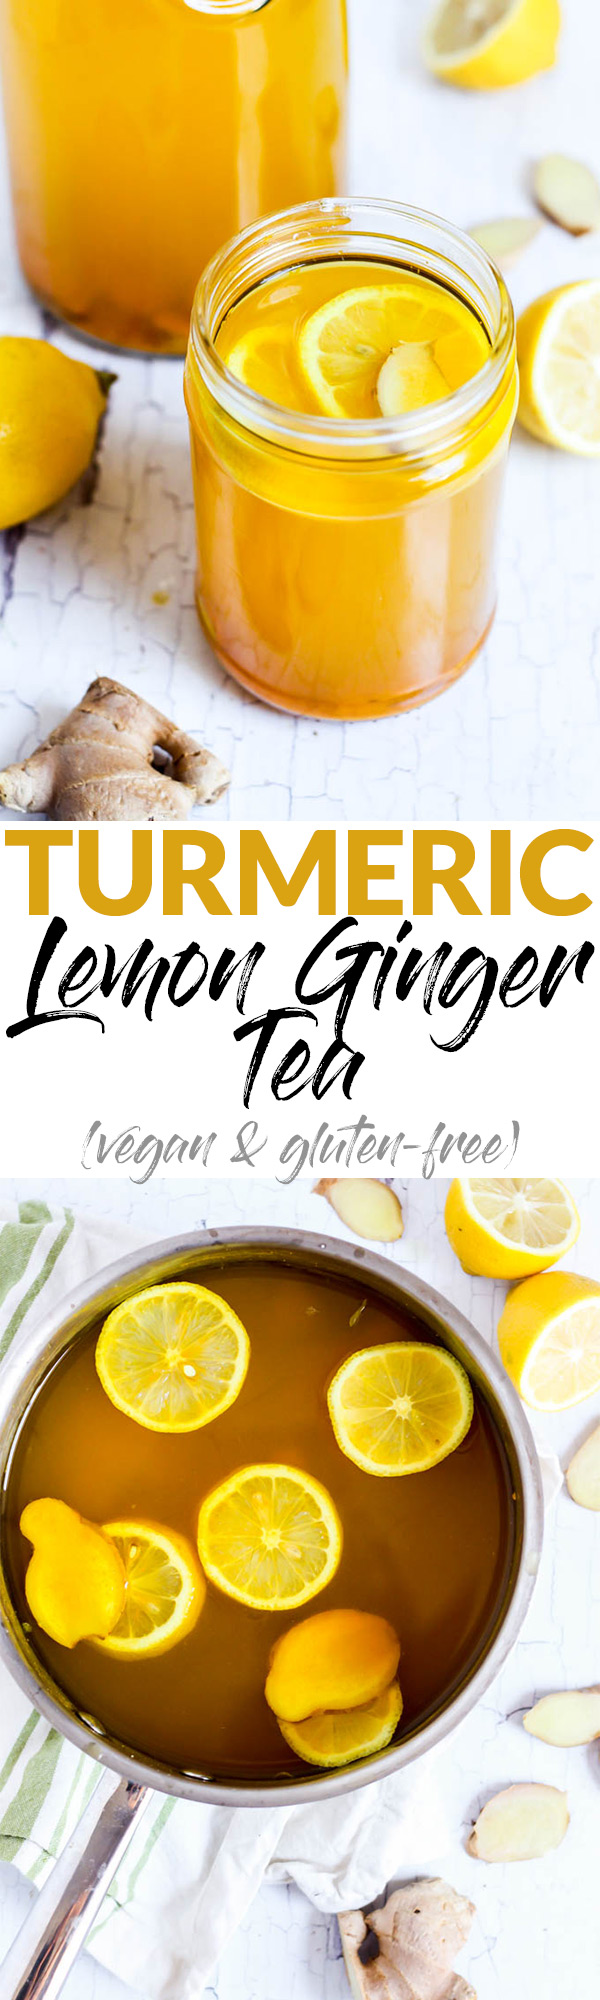 Amp up your morning routine with this warm, nourishing Turmeric Lemon Ginger Tea! It's full of antioxidants and vitamin C to start your day feeling great.